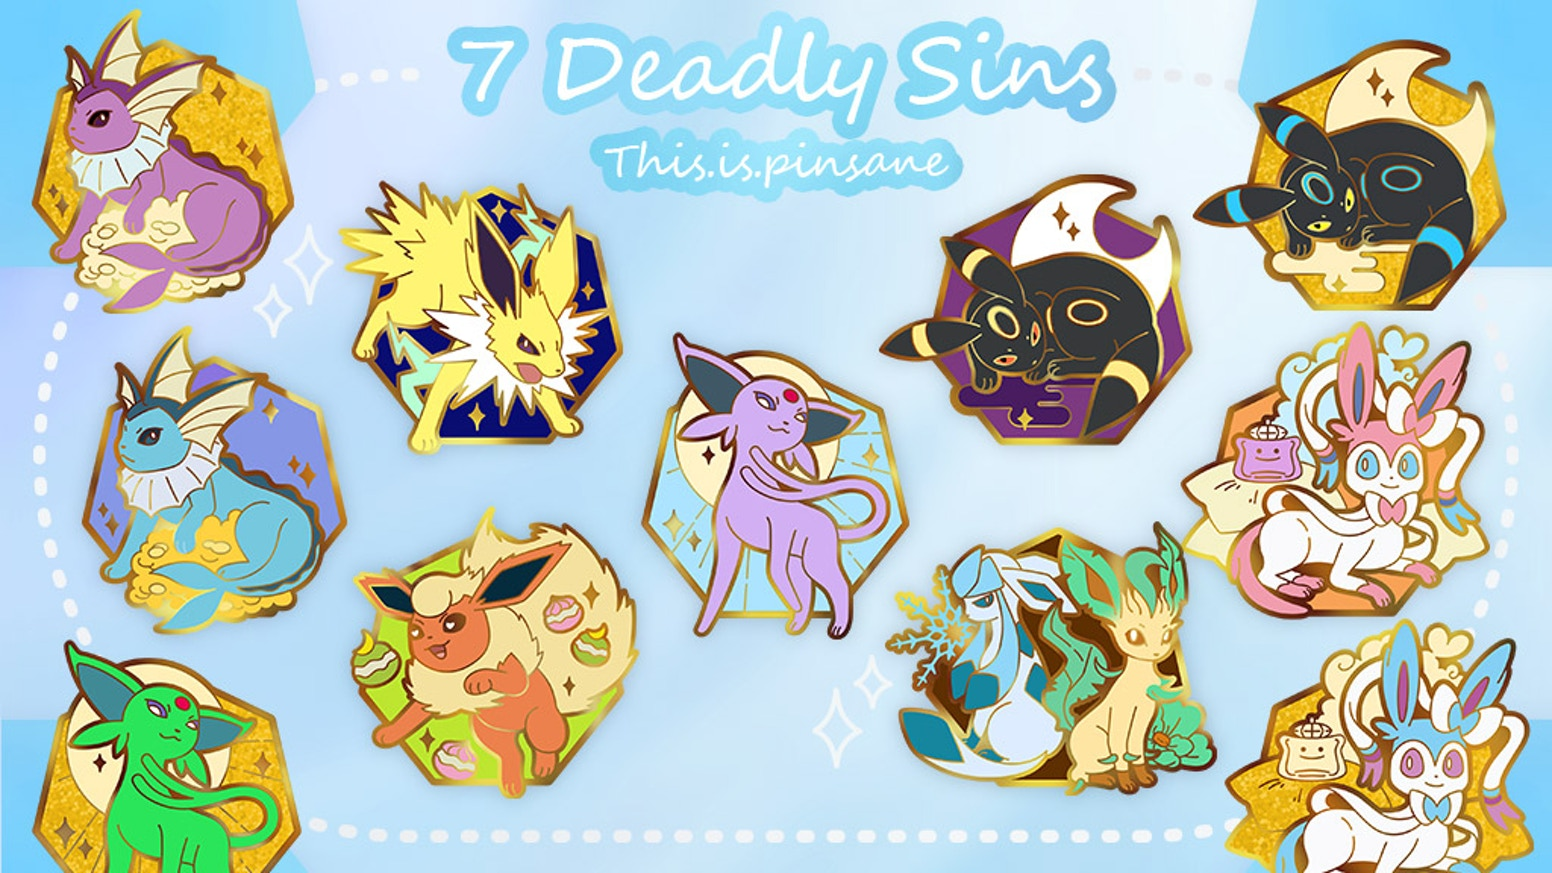 Congratulations! We made it, the 7 Deadly Sins Kickstarter is over, thank you so much for your support.